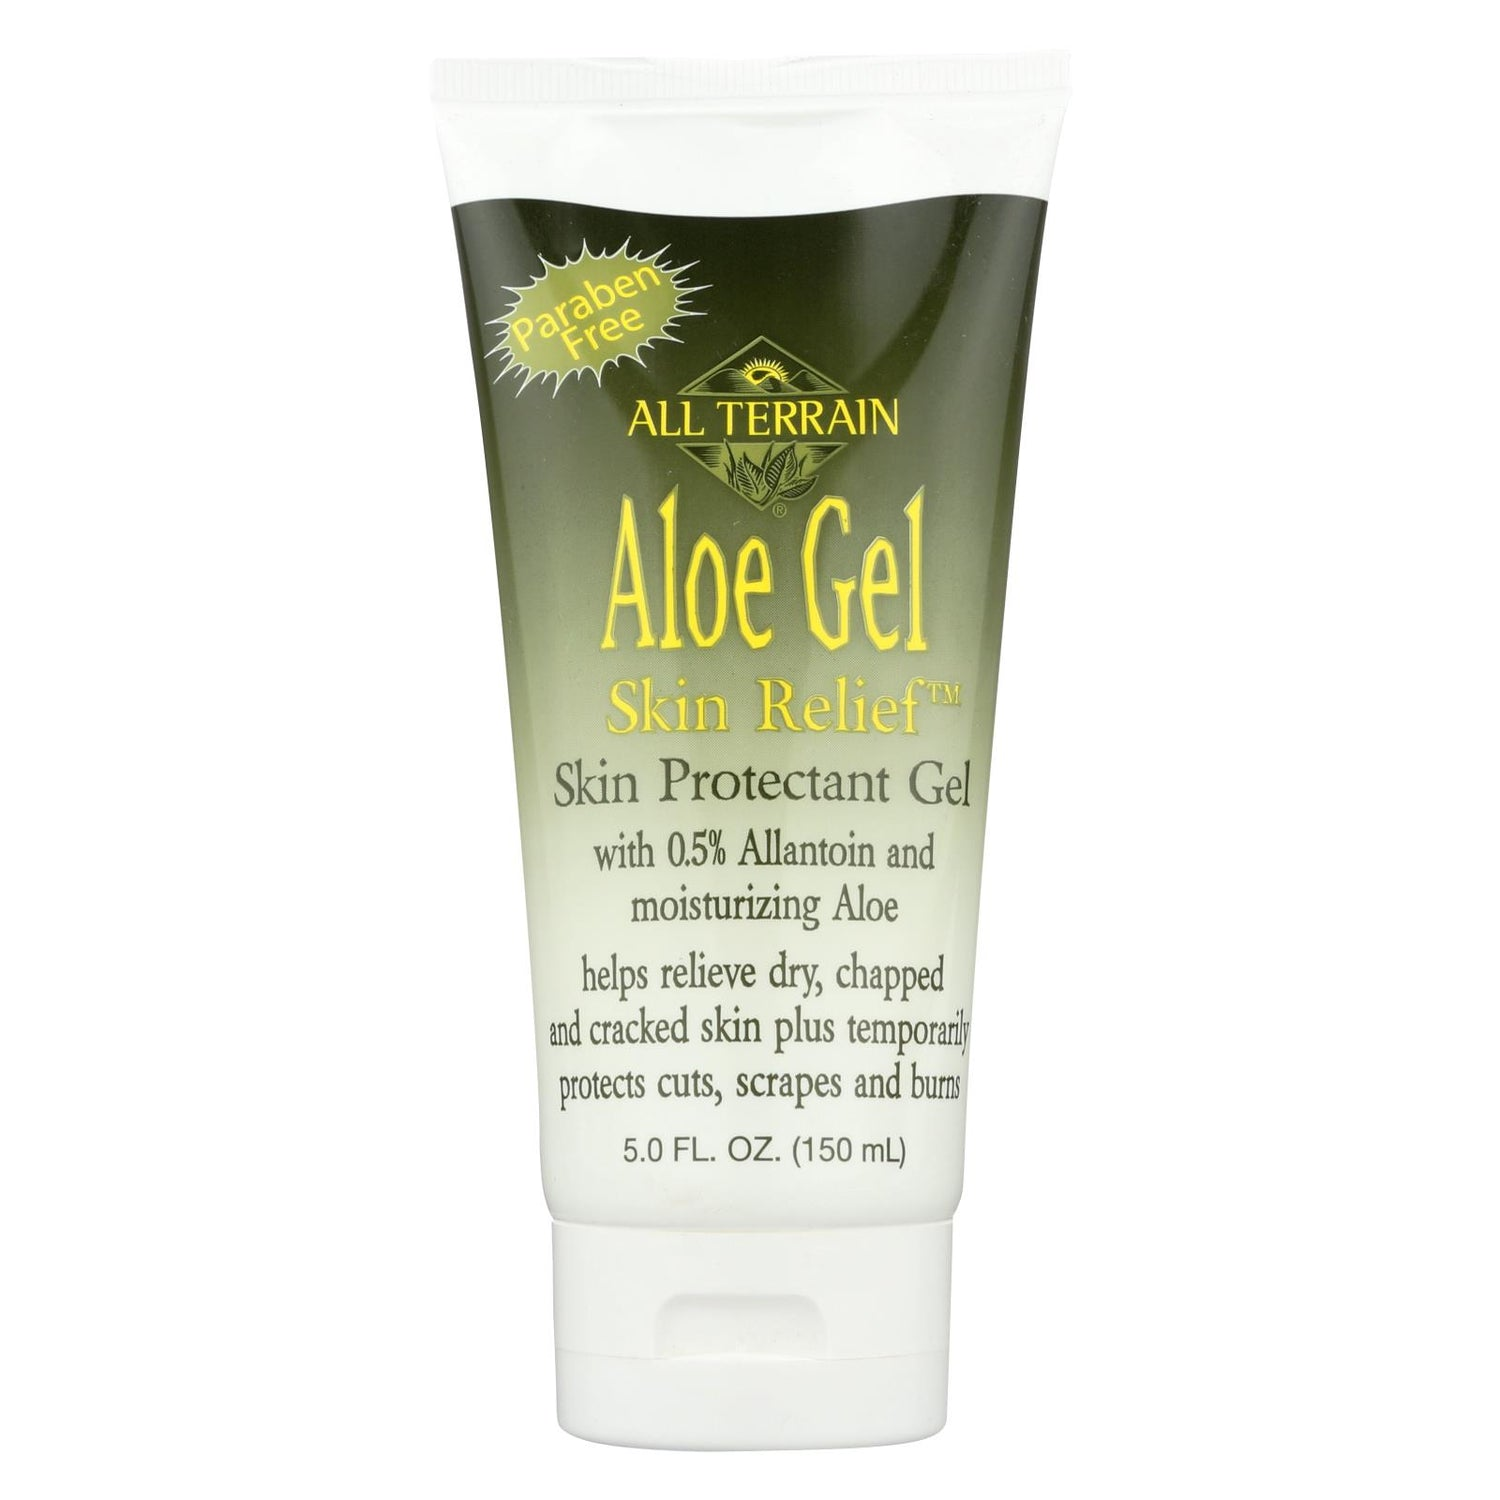 All Terrain Aloe Gel Skin Relief - 5 Fl Oz